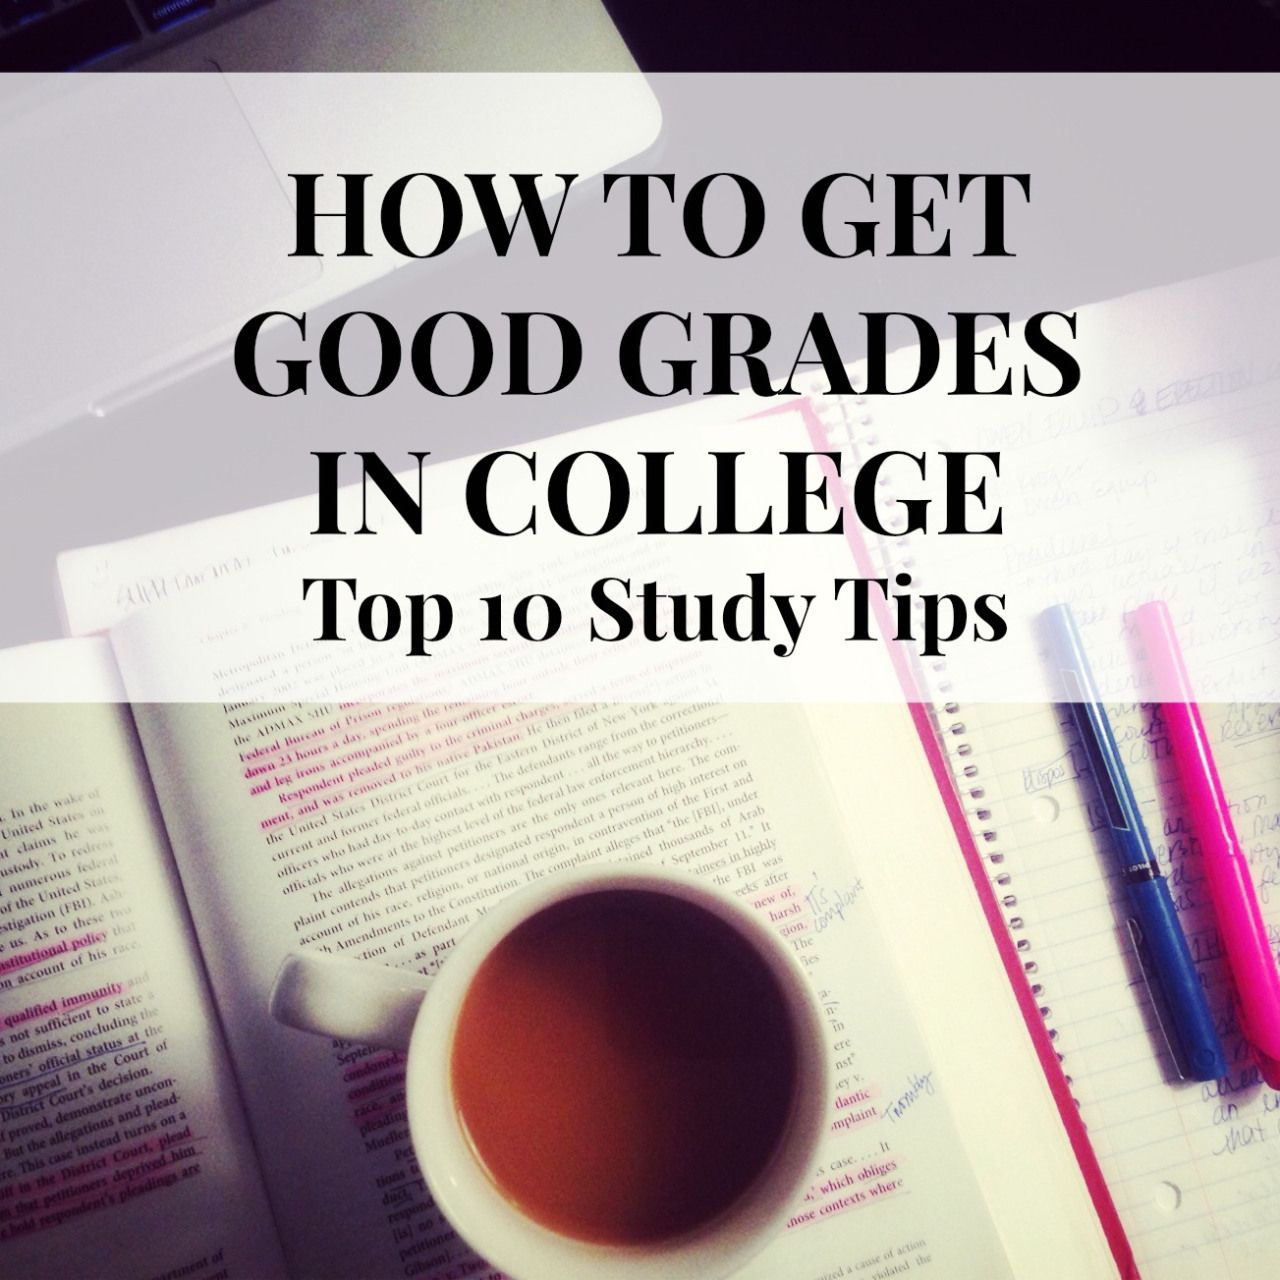 top 10 study tips to getting good grades in college college life top 10 study tips to getting good grades in college college life snow college